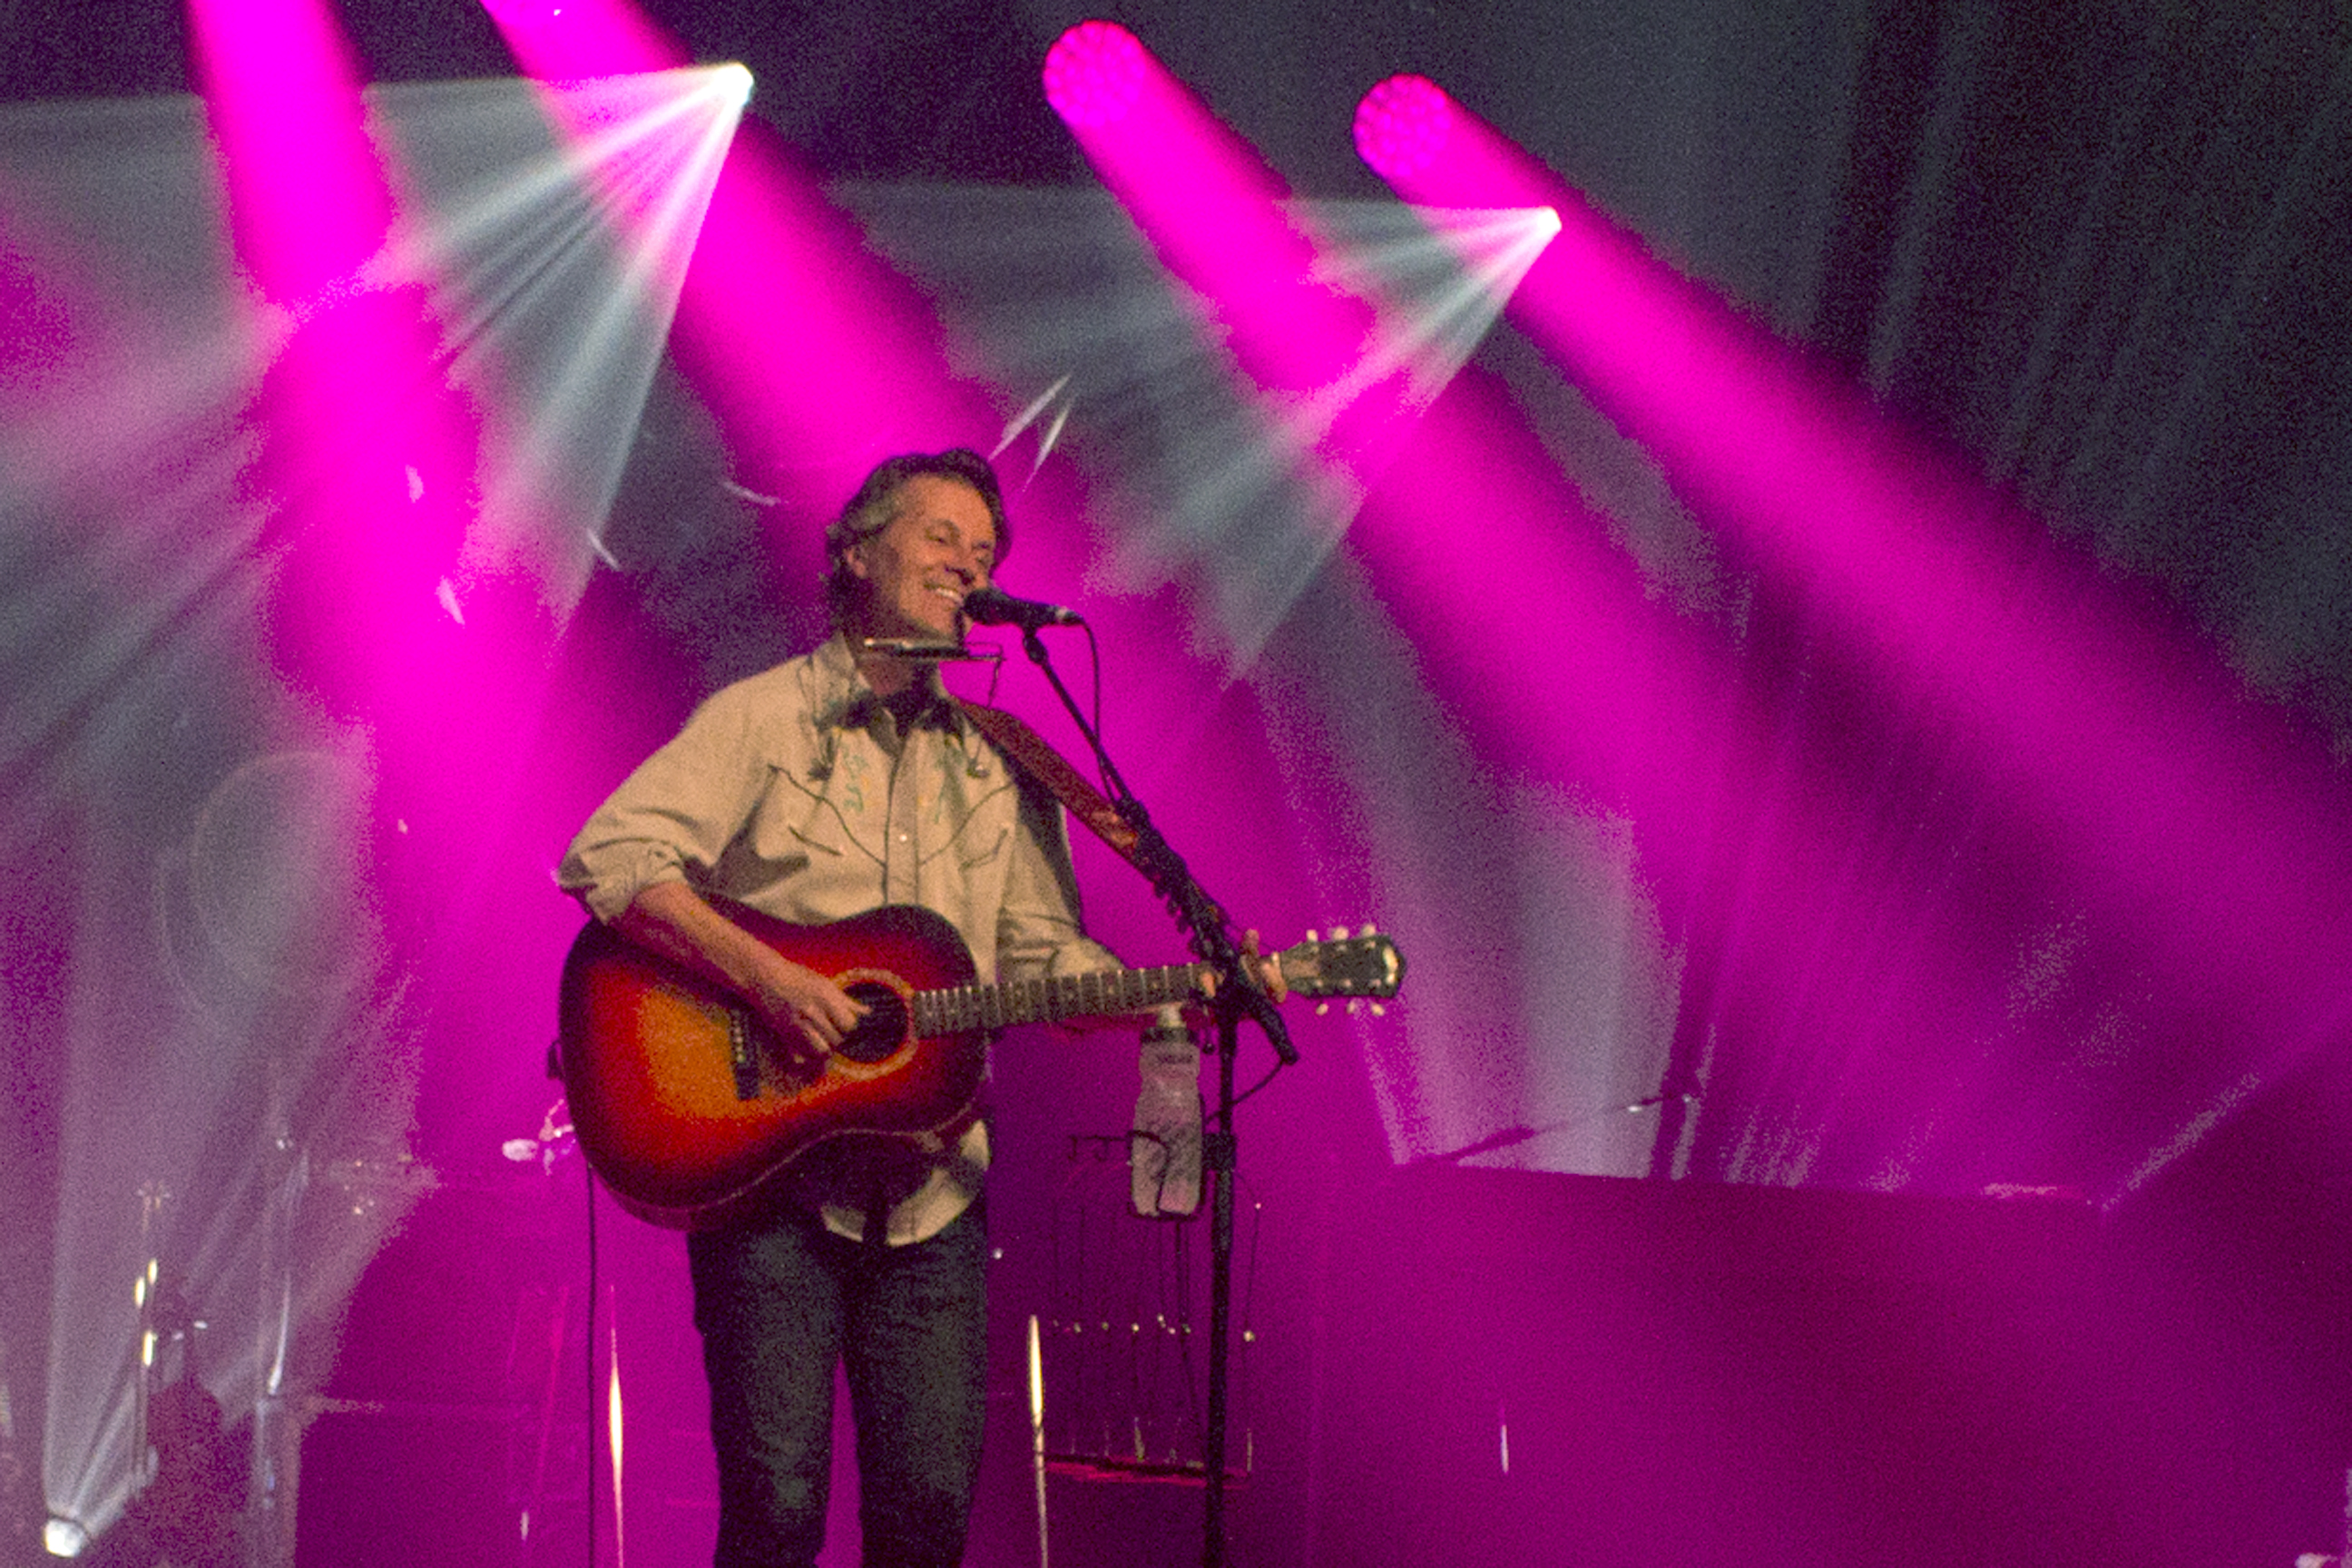 Blue Rodeo wows crowd at pair of performances in Sunderland